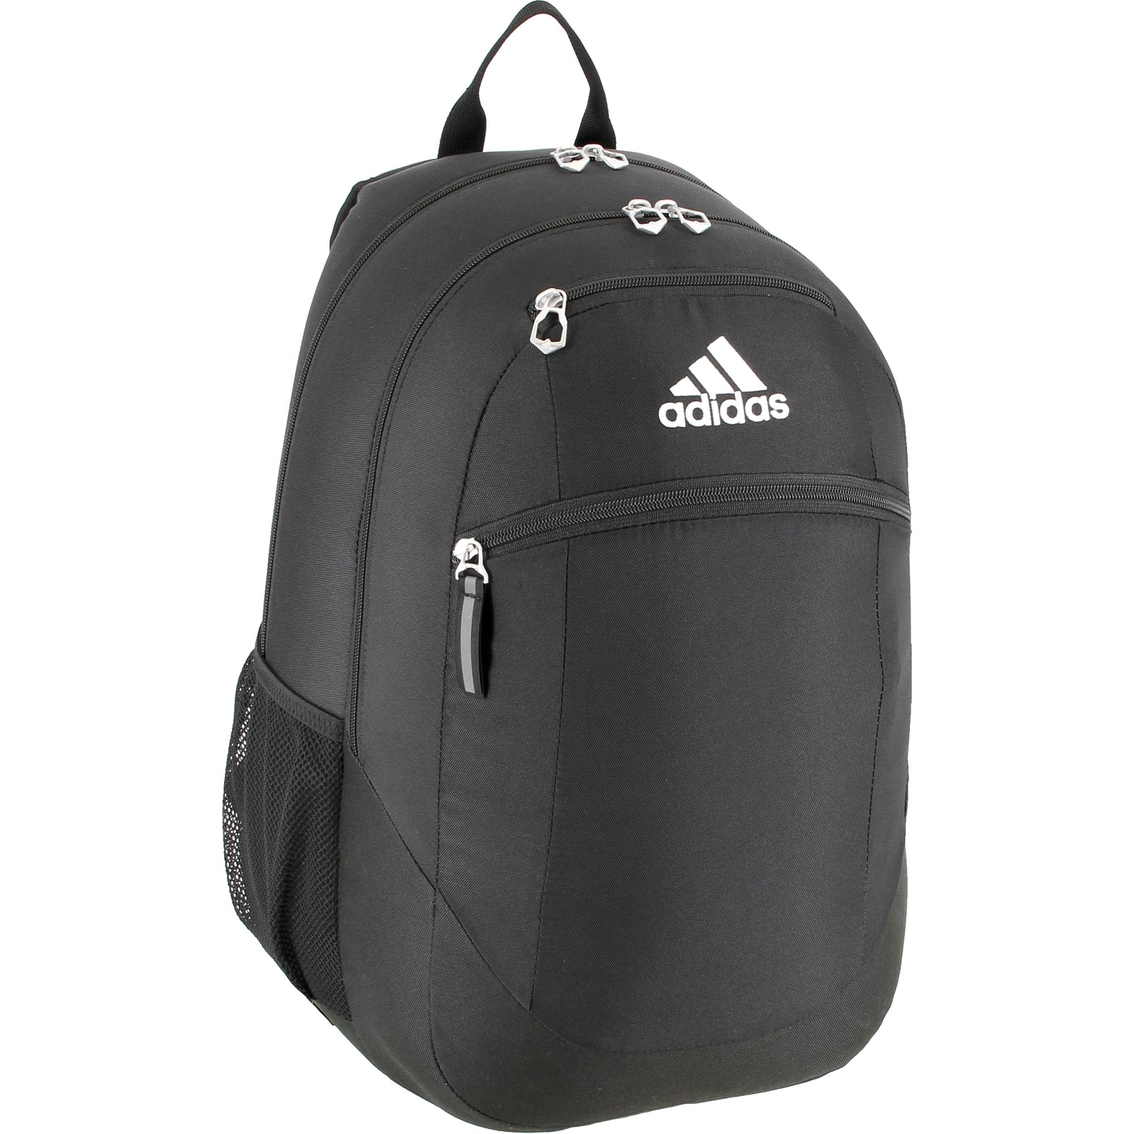 13dfe66f104 Adidas Striker Ii Team Backpack   Backpacks   Valentine s Day Shop ...